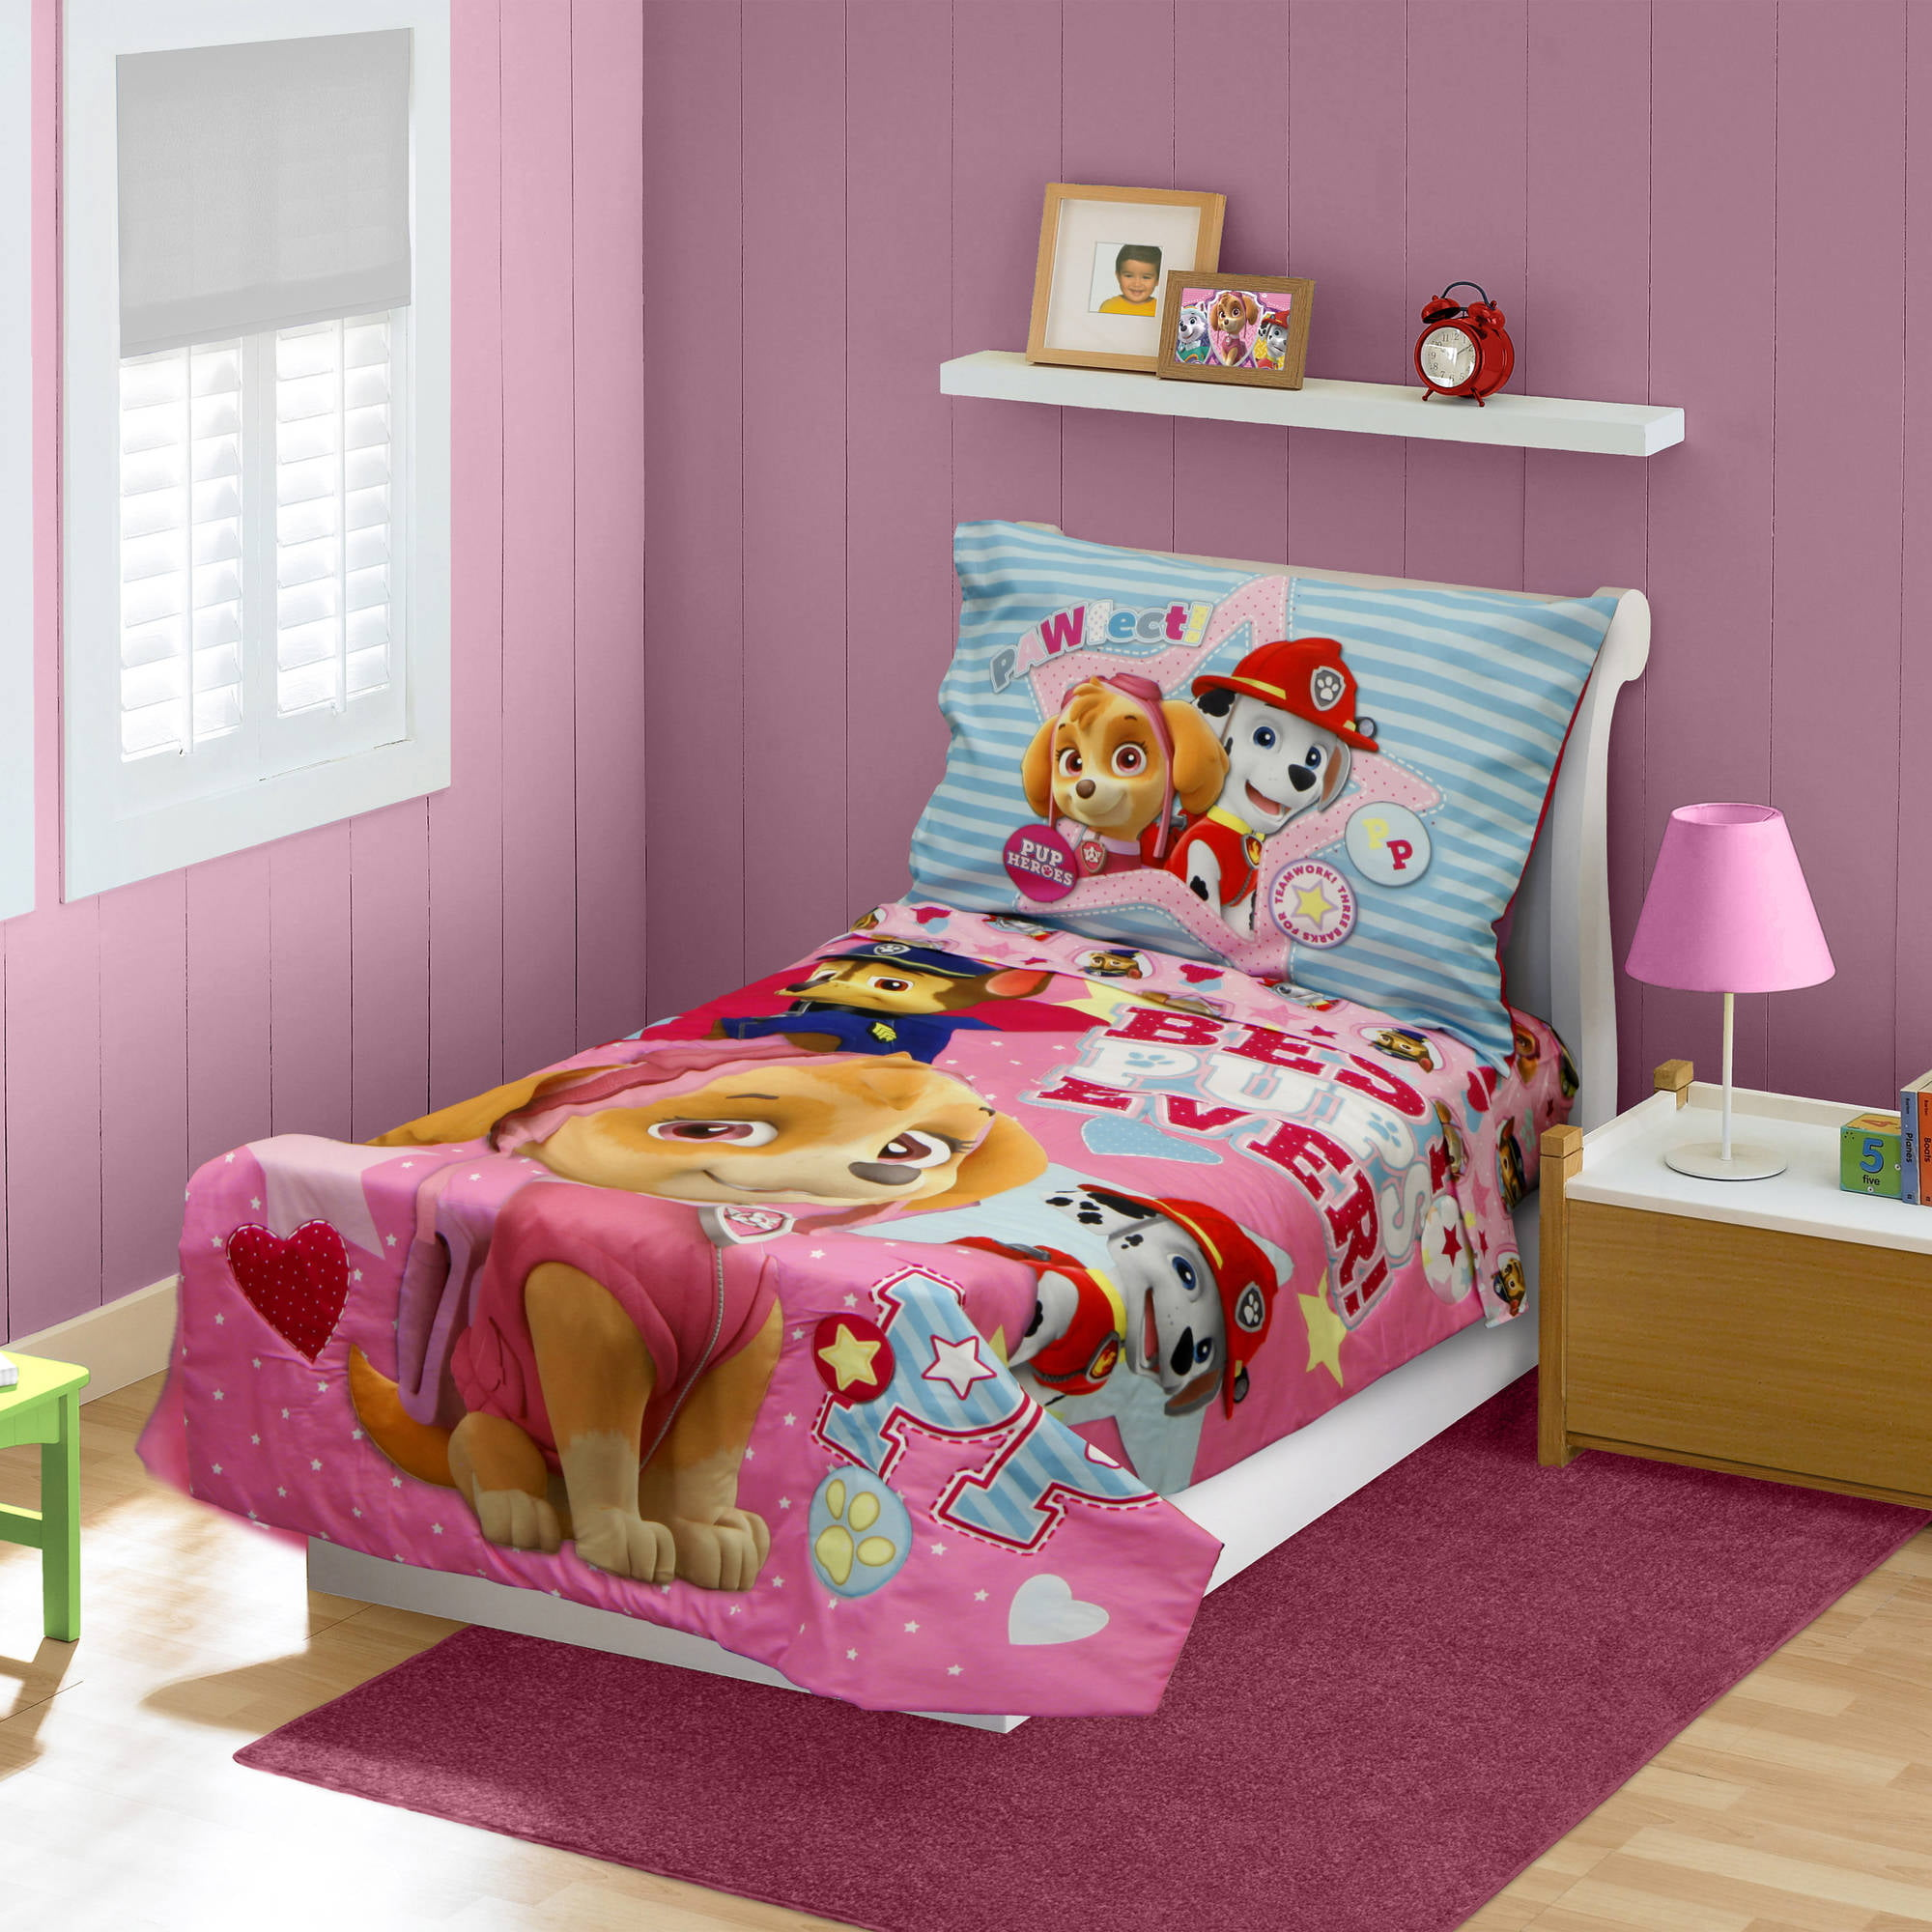 Pink bed sets for girls - Babyboom Nick Jr Paw Patrol Skye Best Pups Ever 4 Piece Toddler Bedding Set Pink Walmart Com